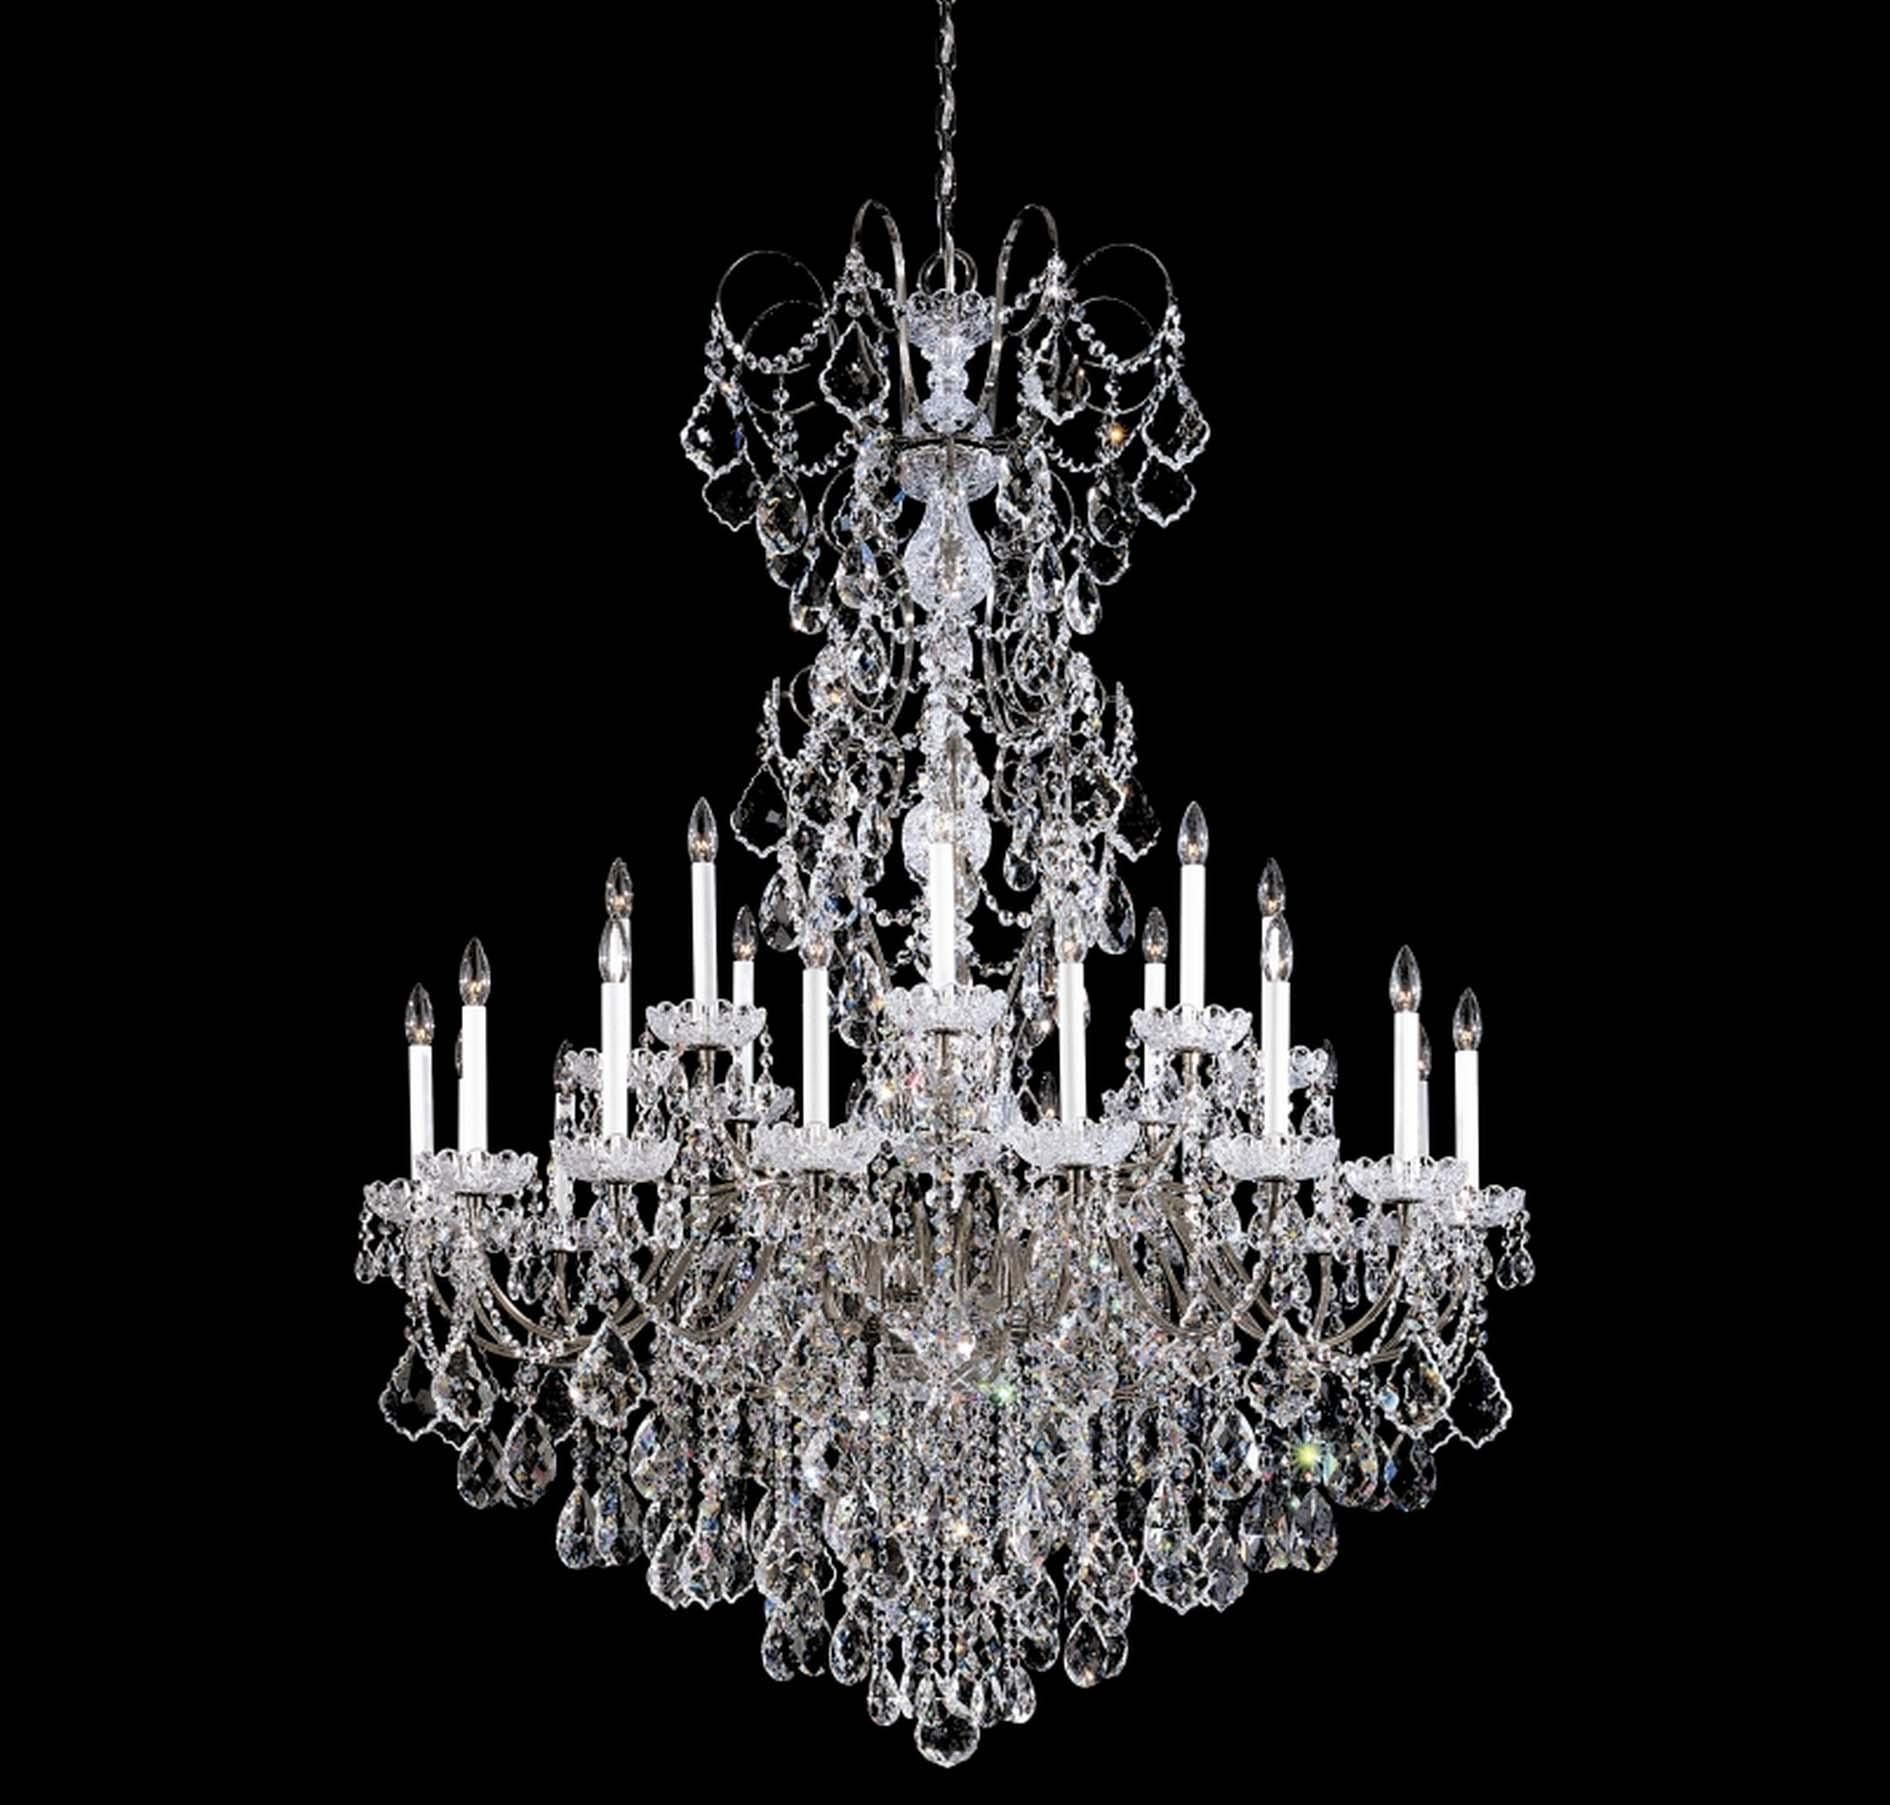 Pin by angiem81 on sparkling crystal chandeliers part 1 wonderful crystal schonbek chandelier with two tier lights mozeypictures Choice Image